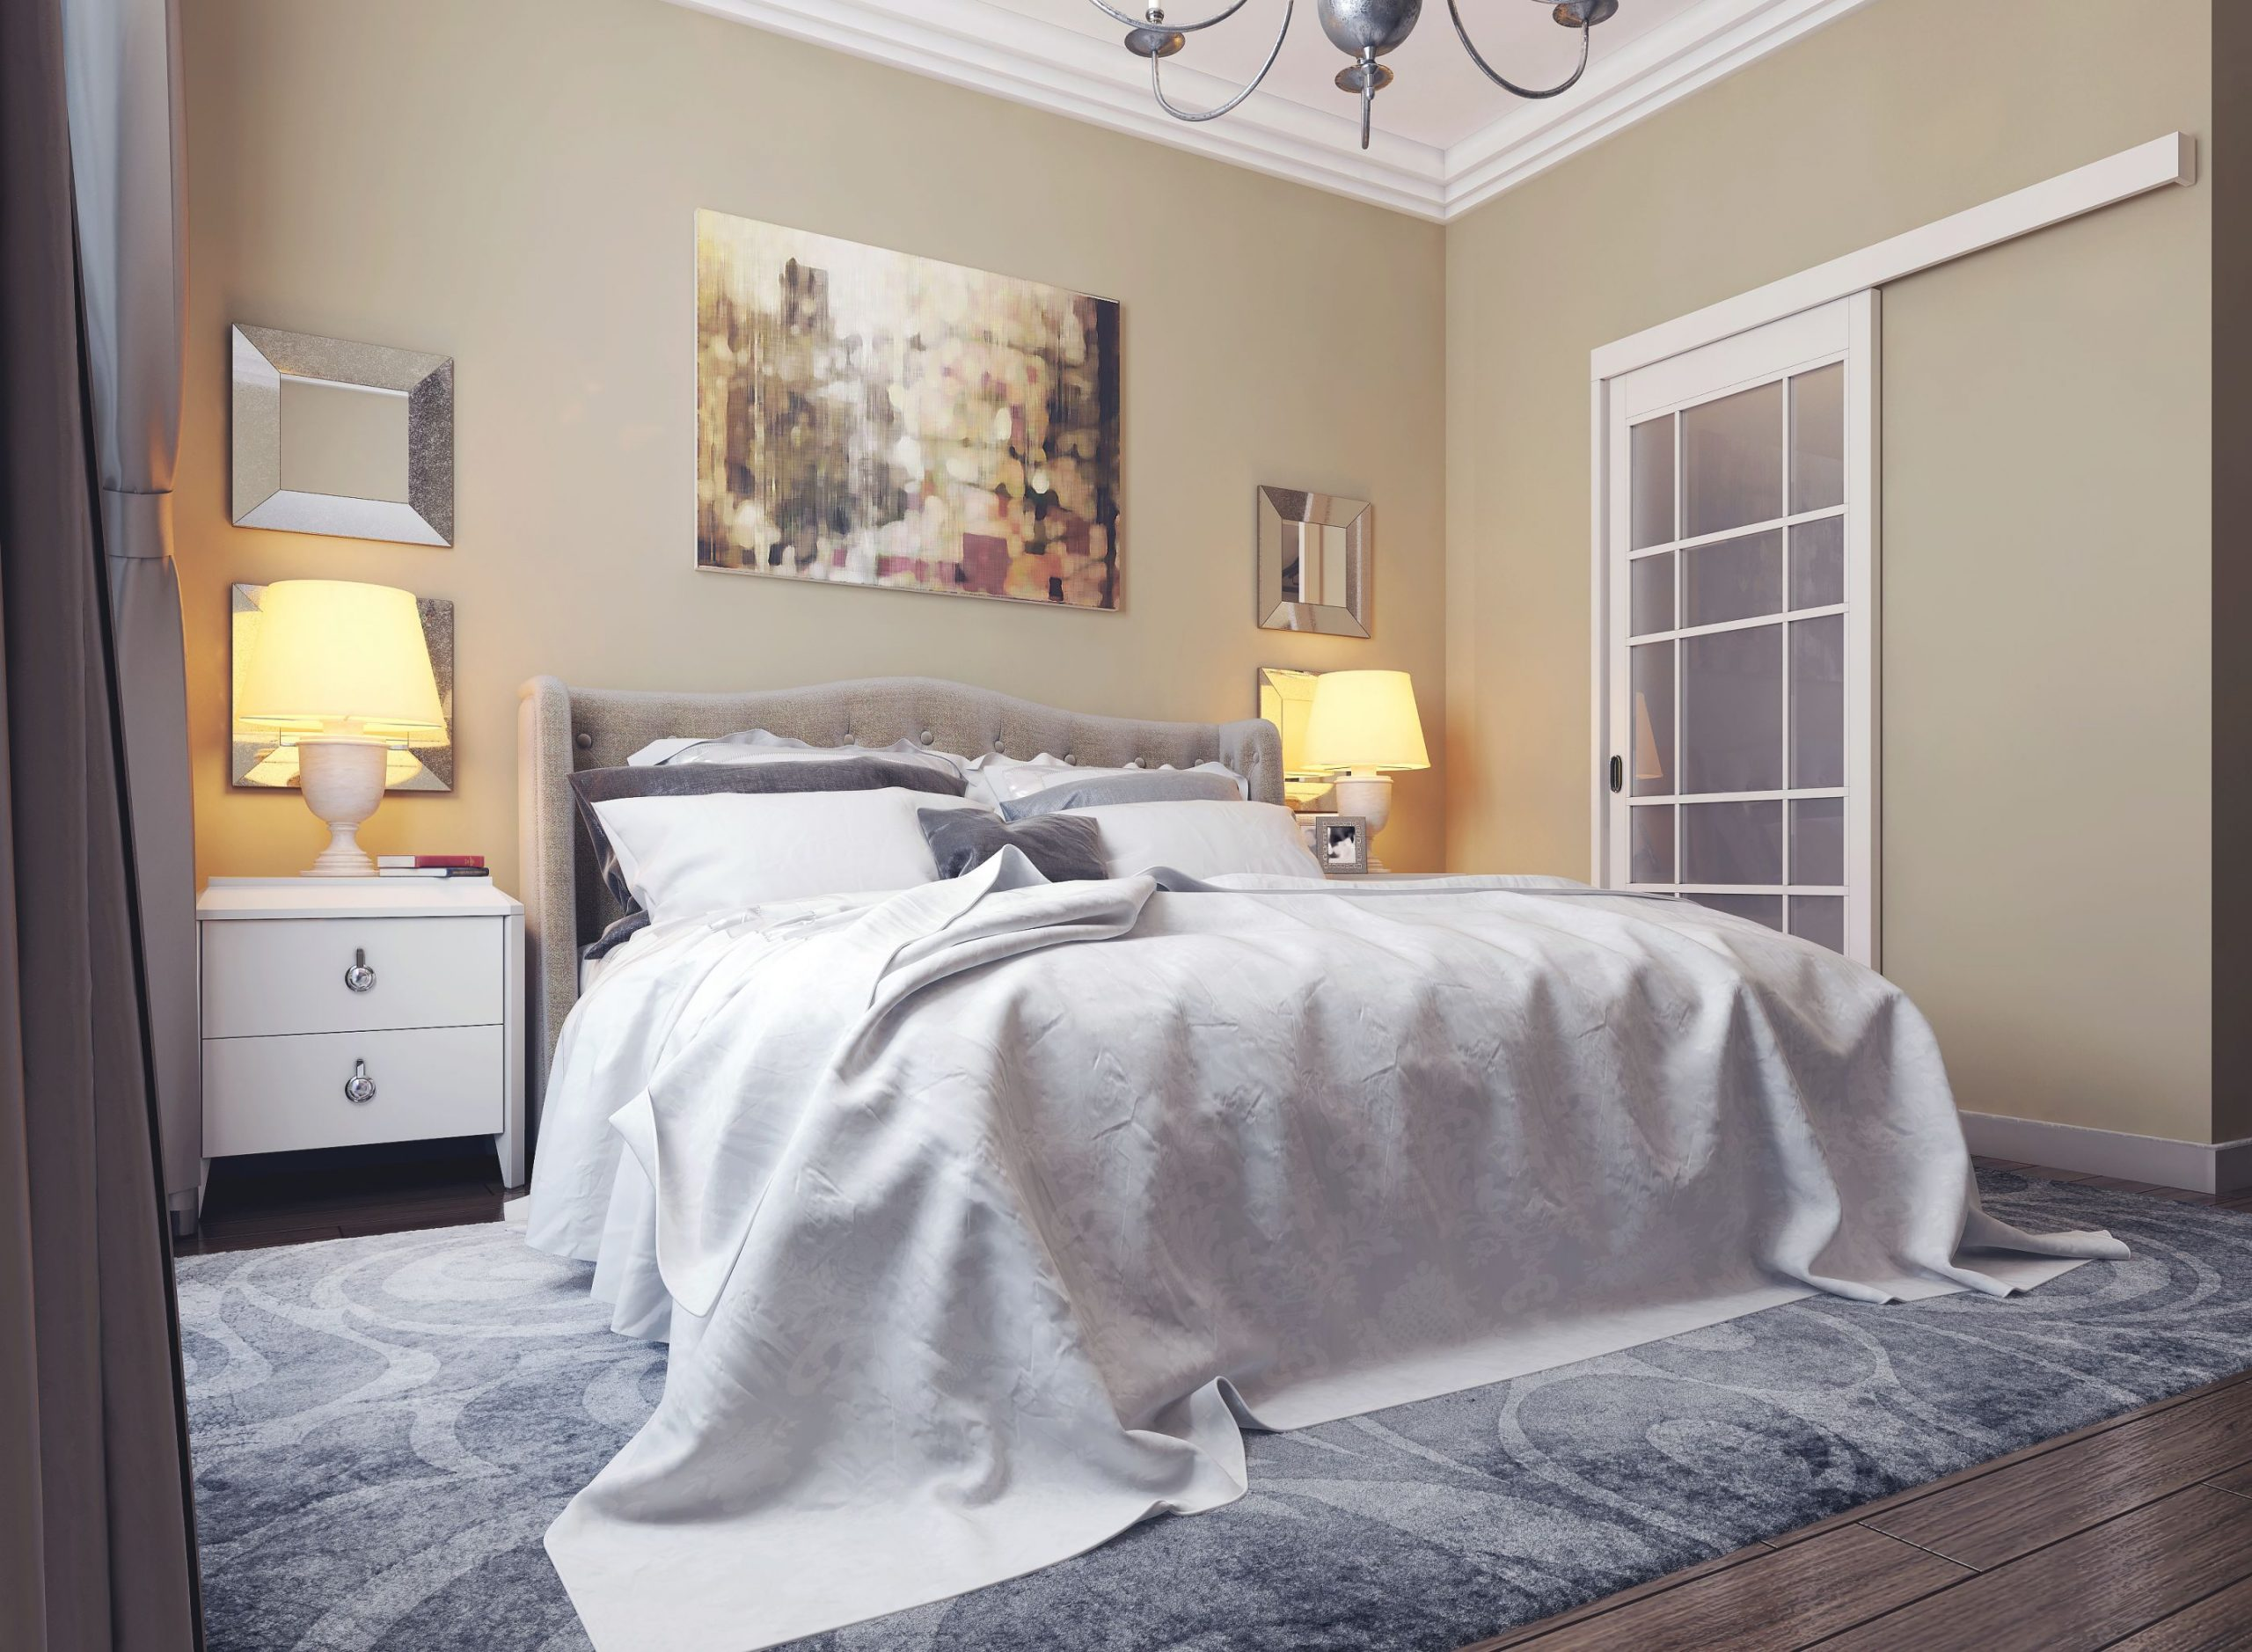 Stunning Wall Decorating Ideas For Bedrooms Printmeposter intended for Decoration For Bedrooms Ideas